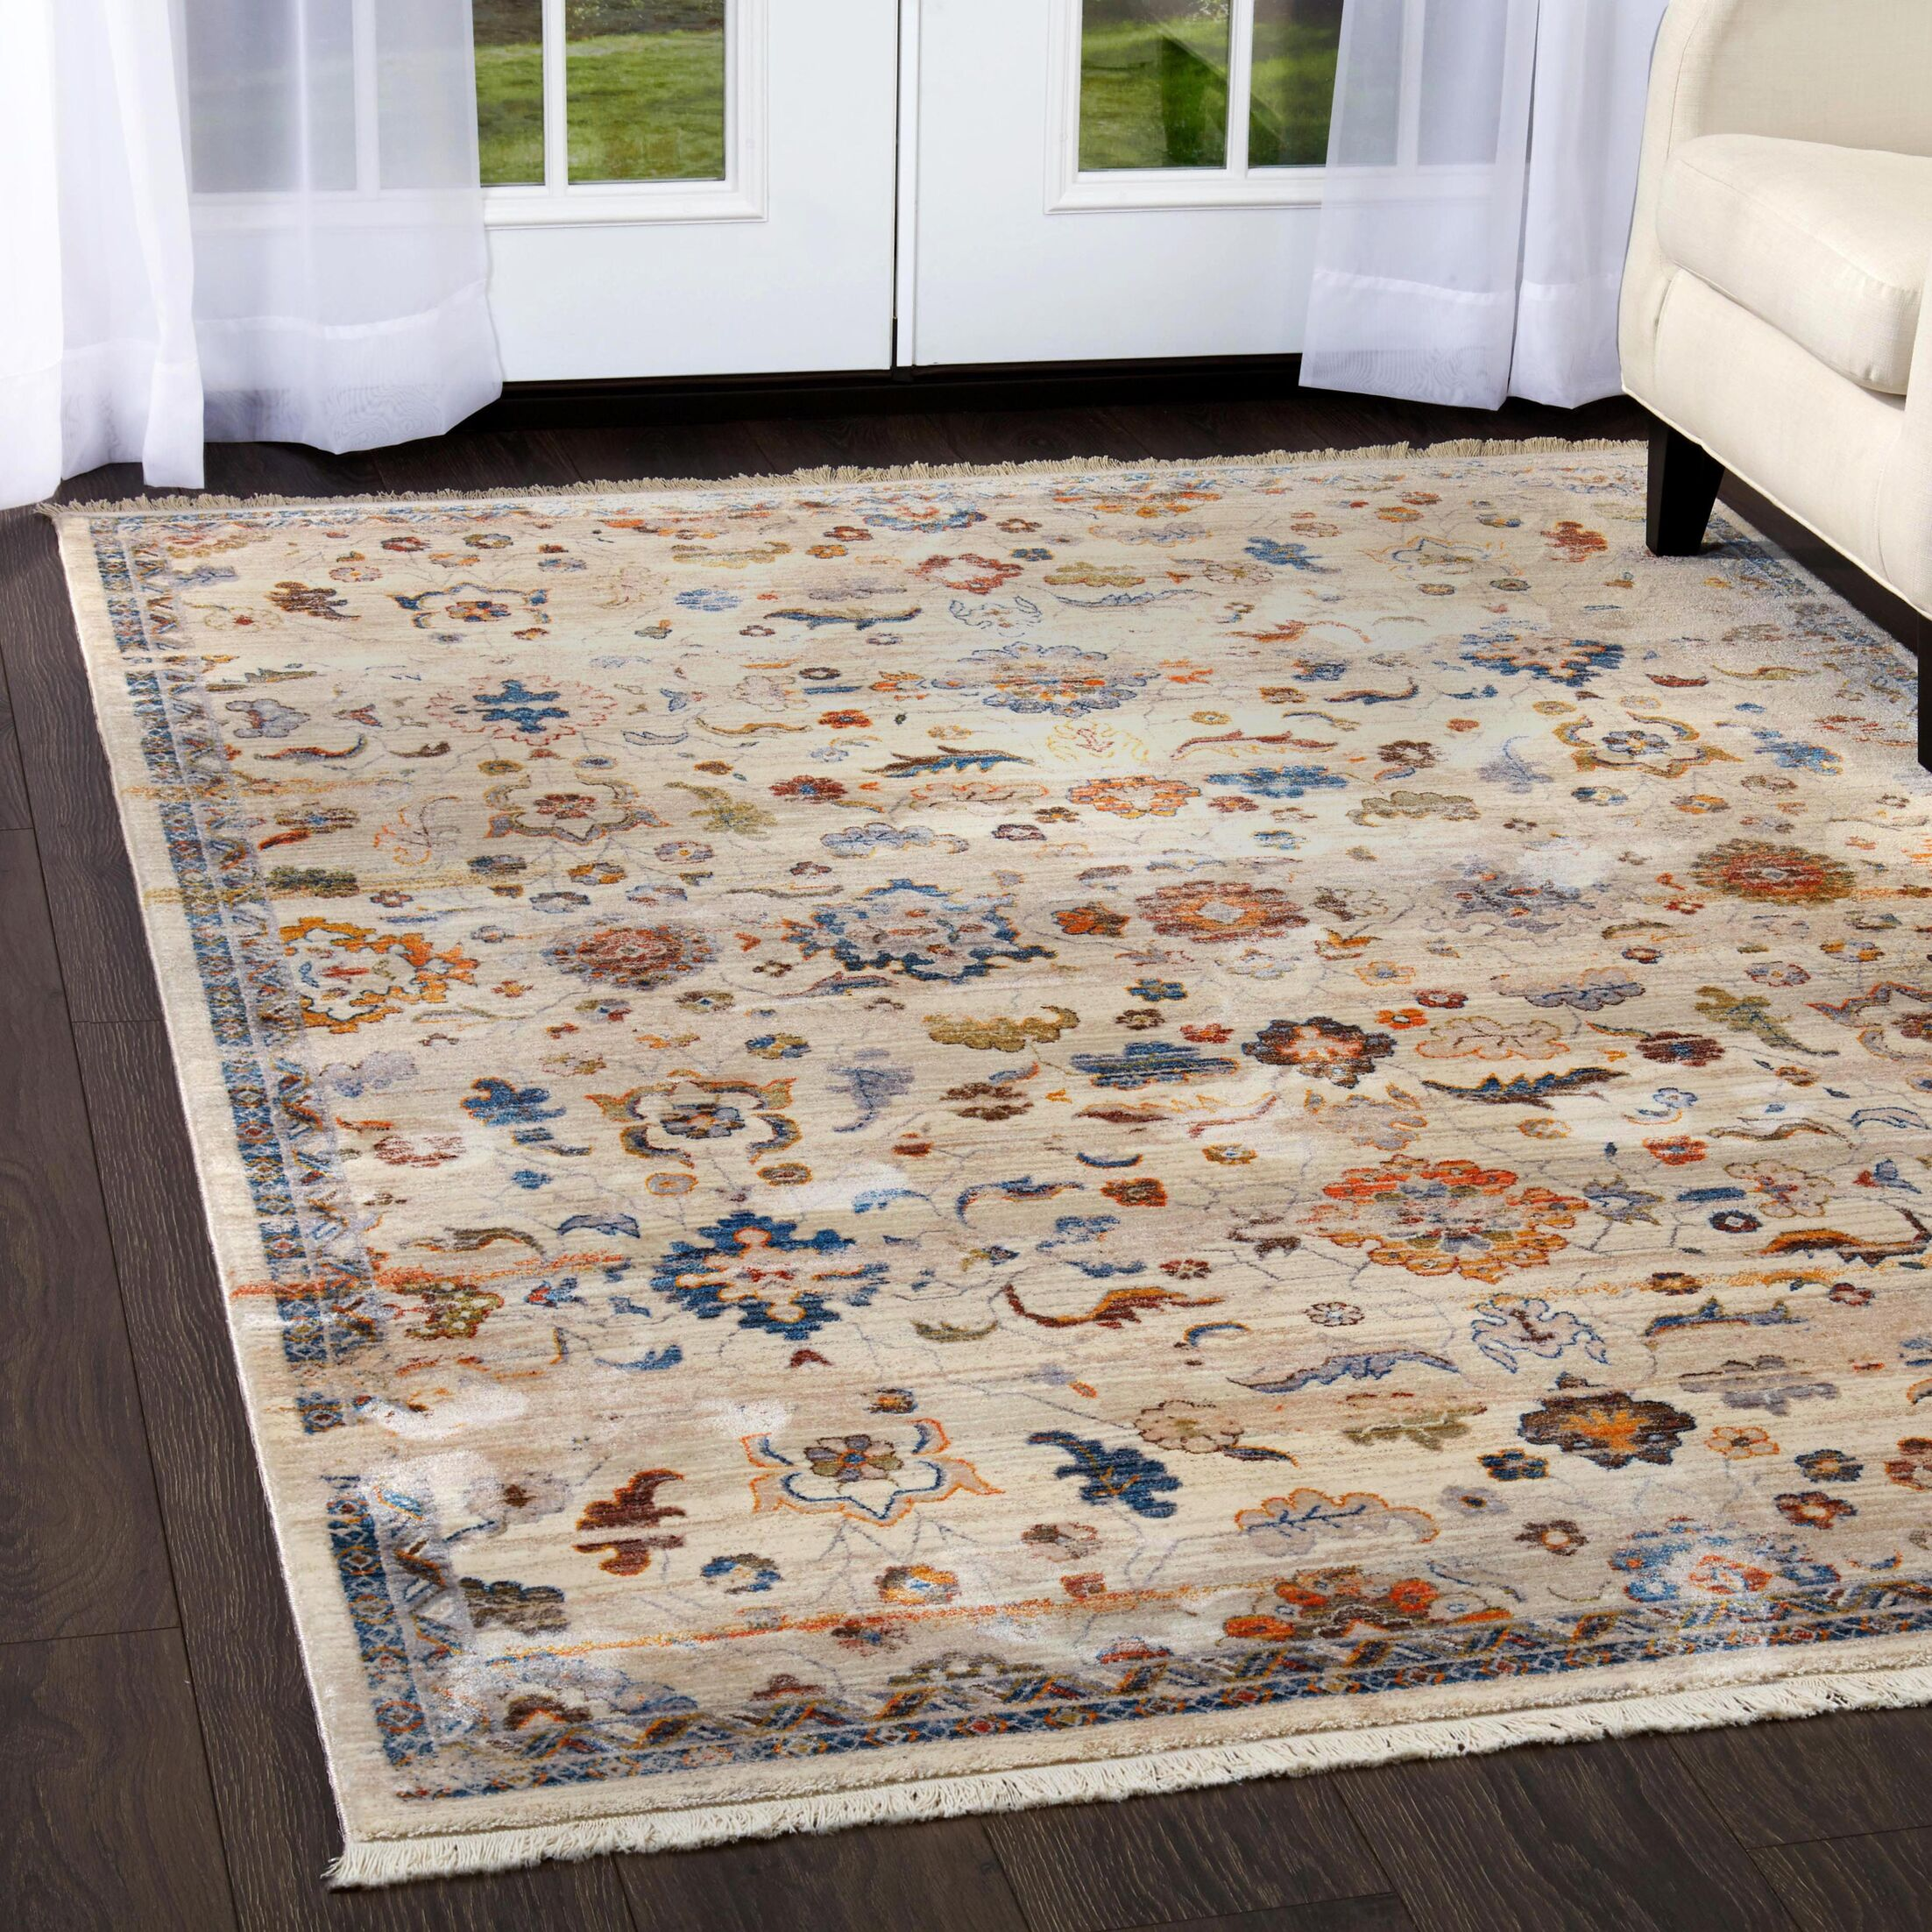 Kalish Distressed Floral Ivory Area Rug Rug Size: Rectangle 5'3